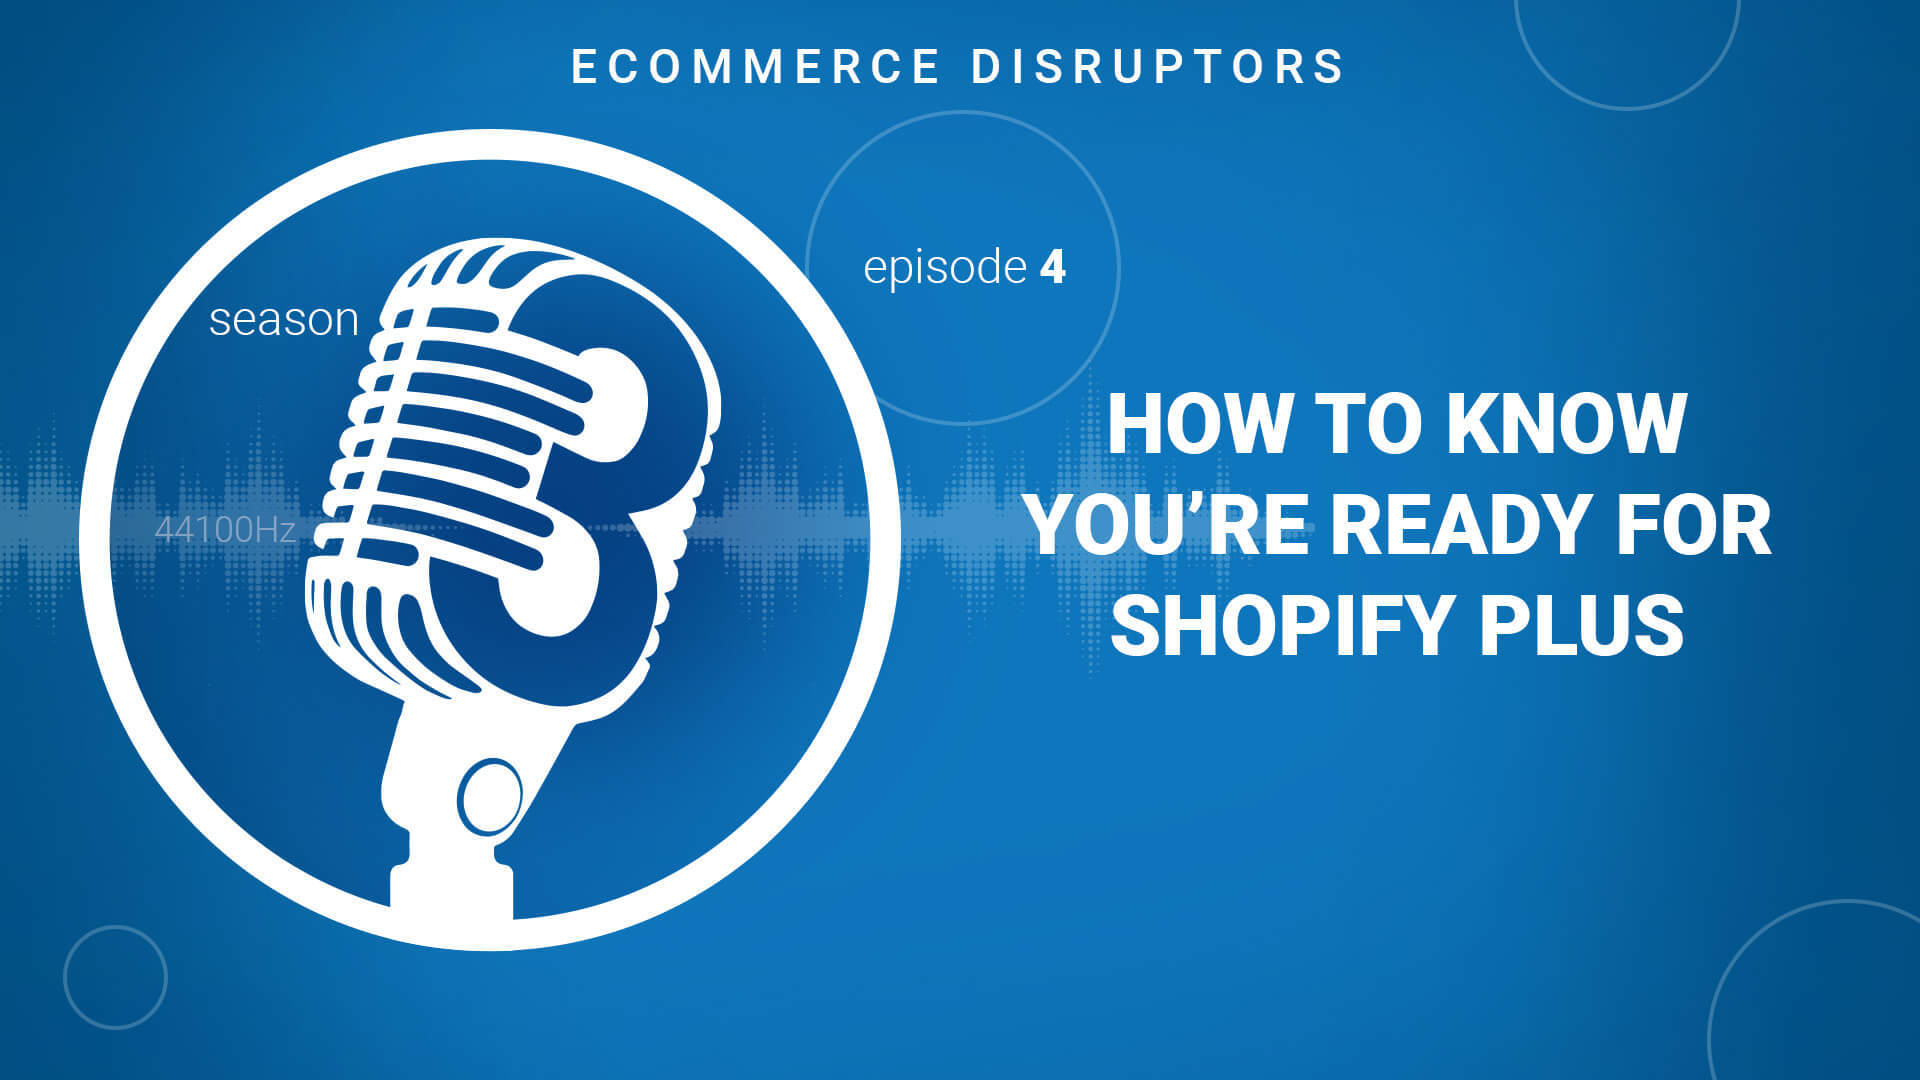 How To Know You're Ready for Shopify Plus